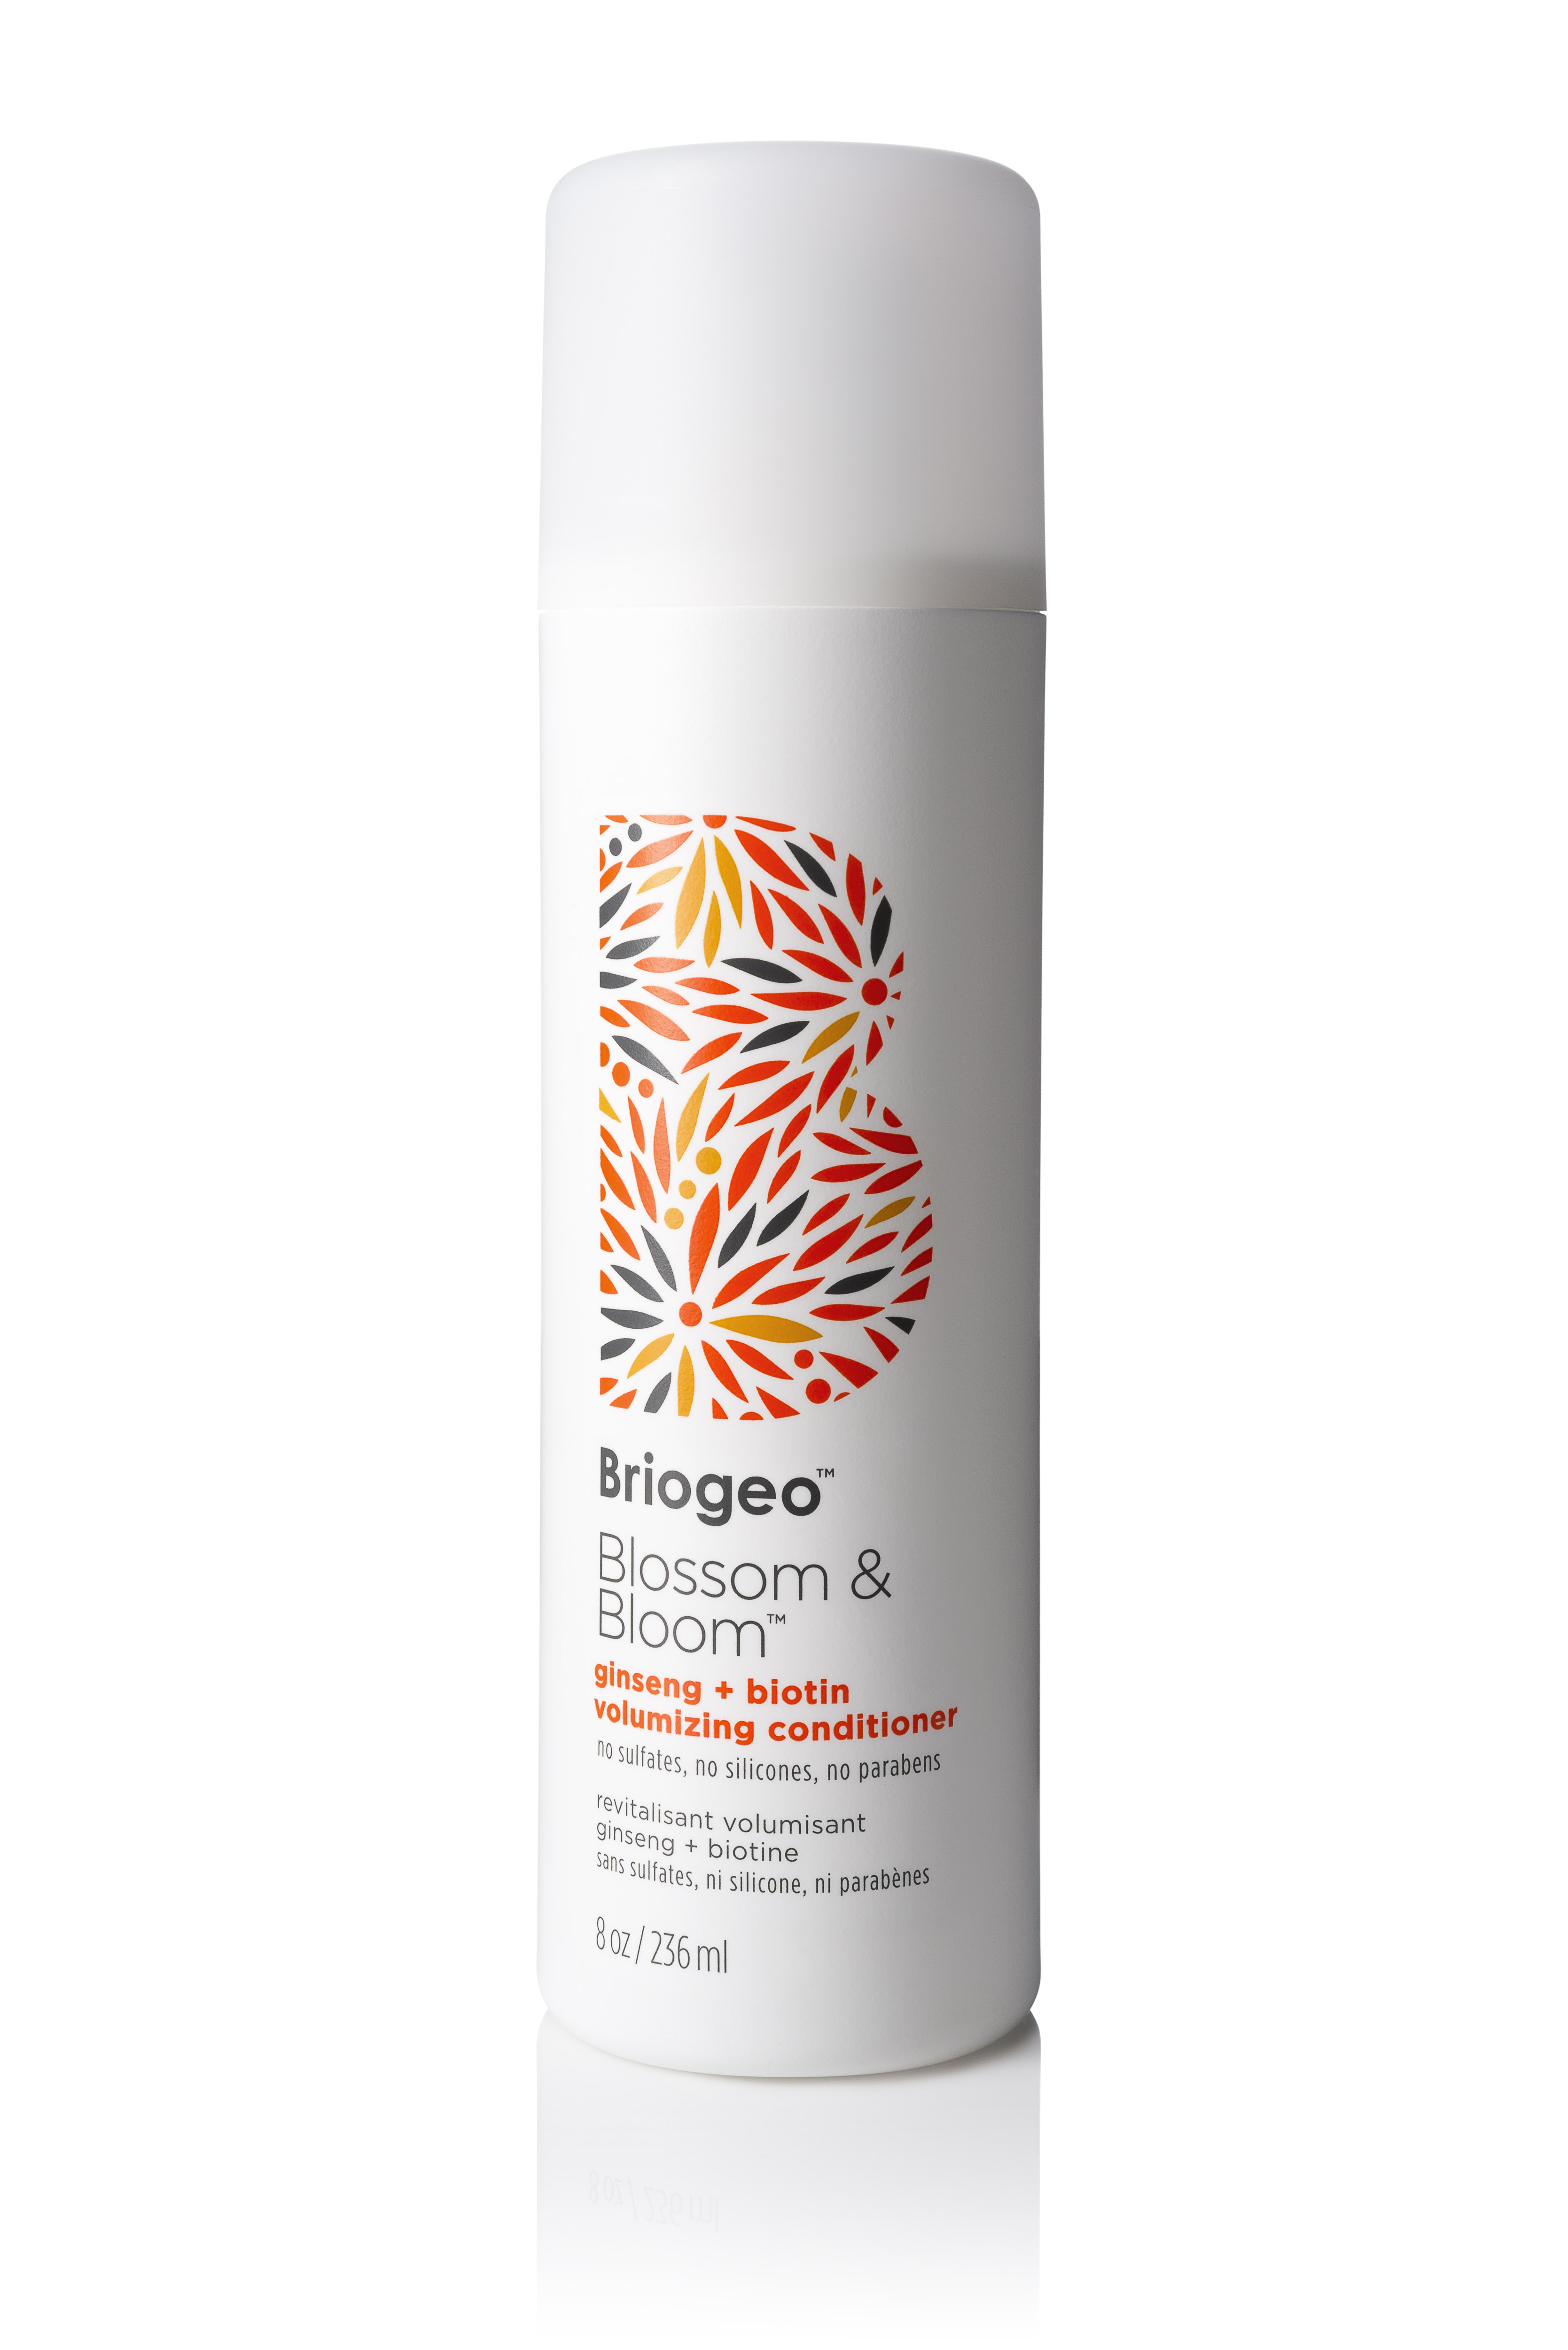 Briogeo Blossom & Bloom Ginseng + Biotin Volumizing Conditioner